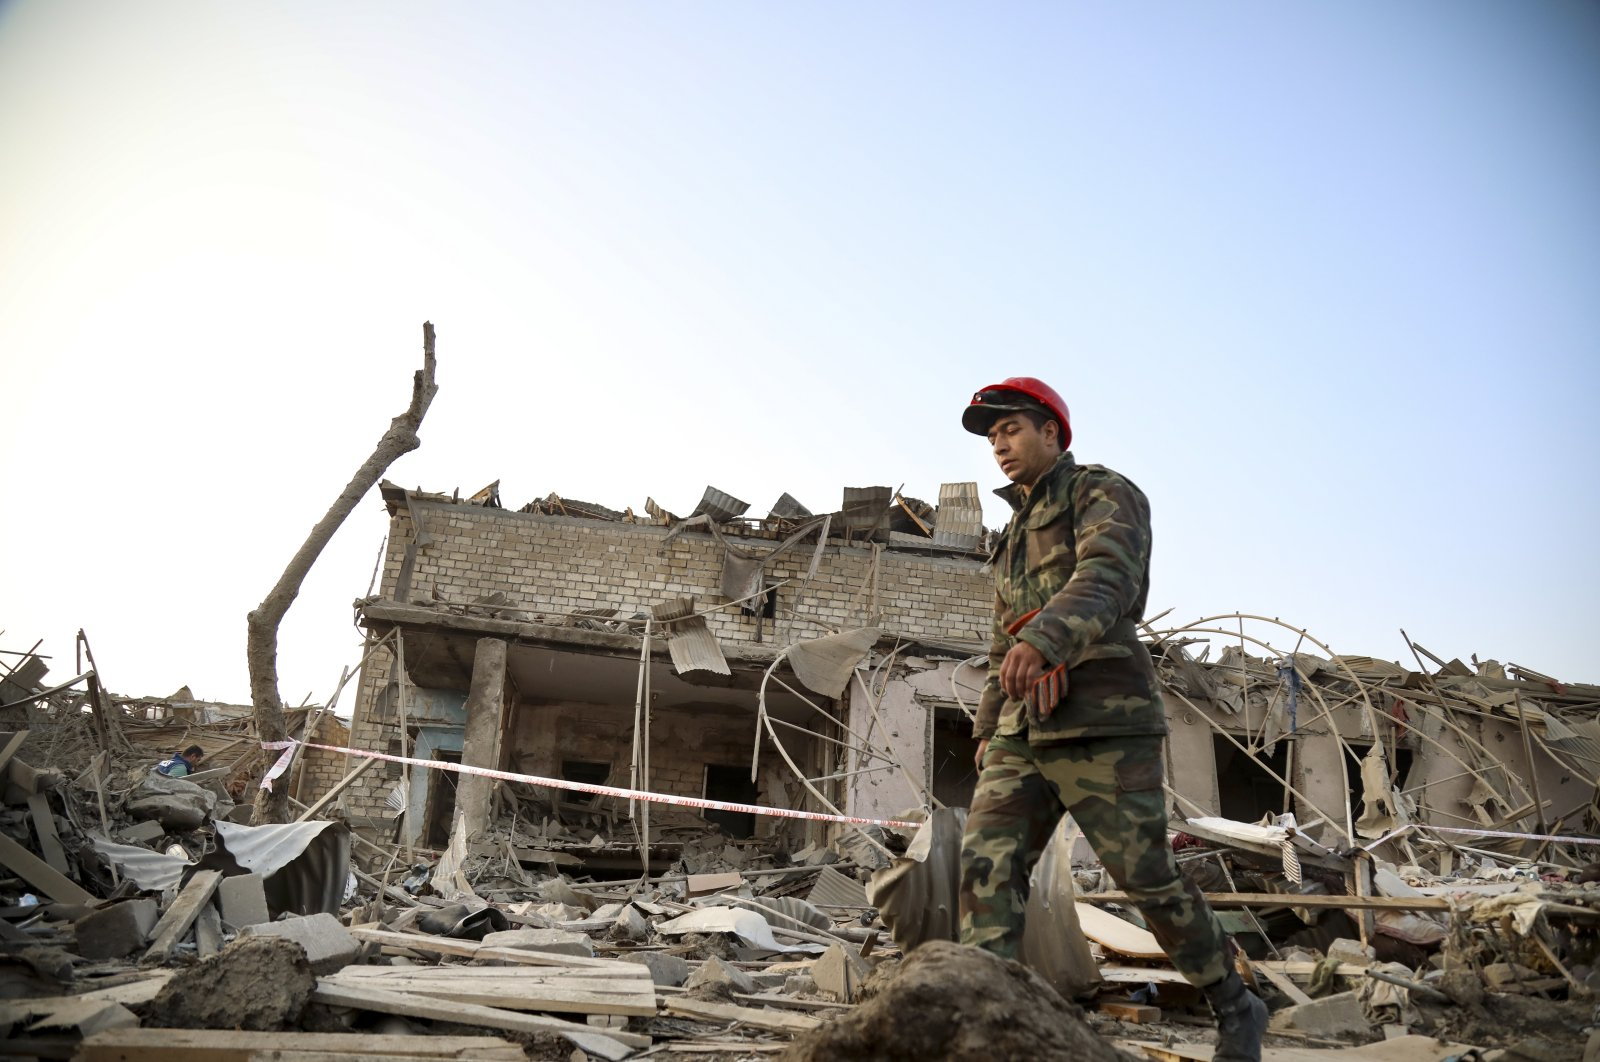 A soldier walks past a destroyed house in a residential area that was hit by rocket fire overnight by Armenian forces, early Saturday, Oct. 17, 2020, in Ganja, Azerbaijan's second largest city, near the border with Armenia. (AP Photo)